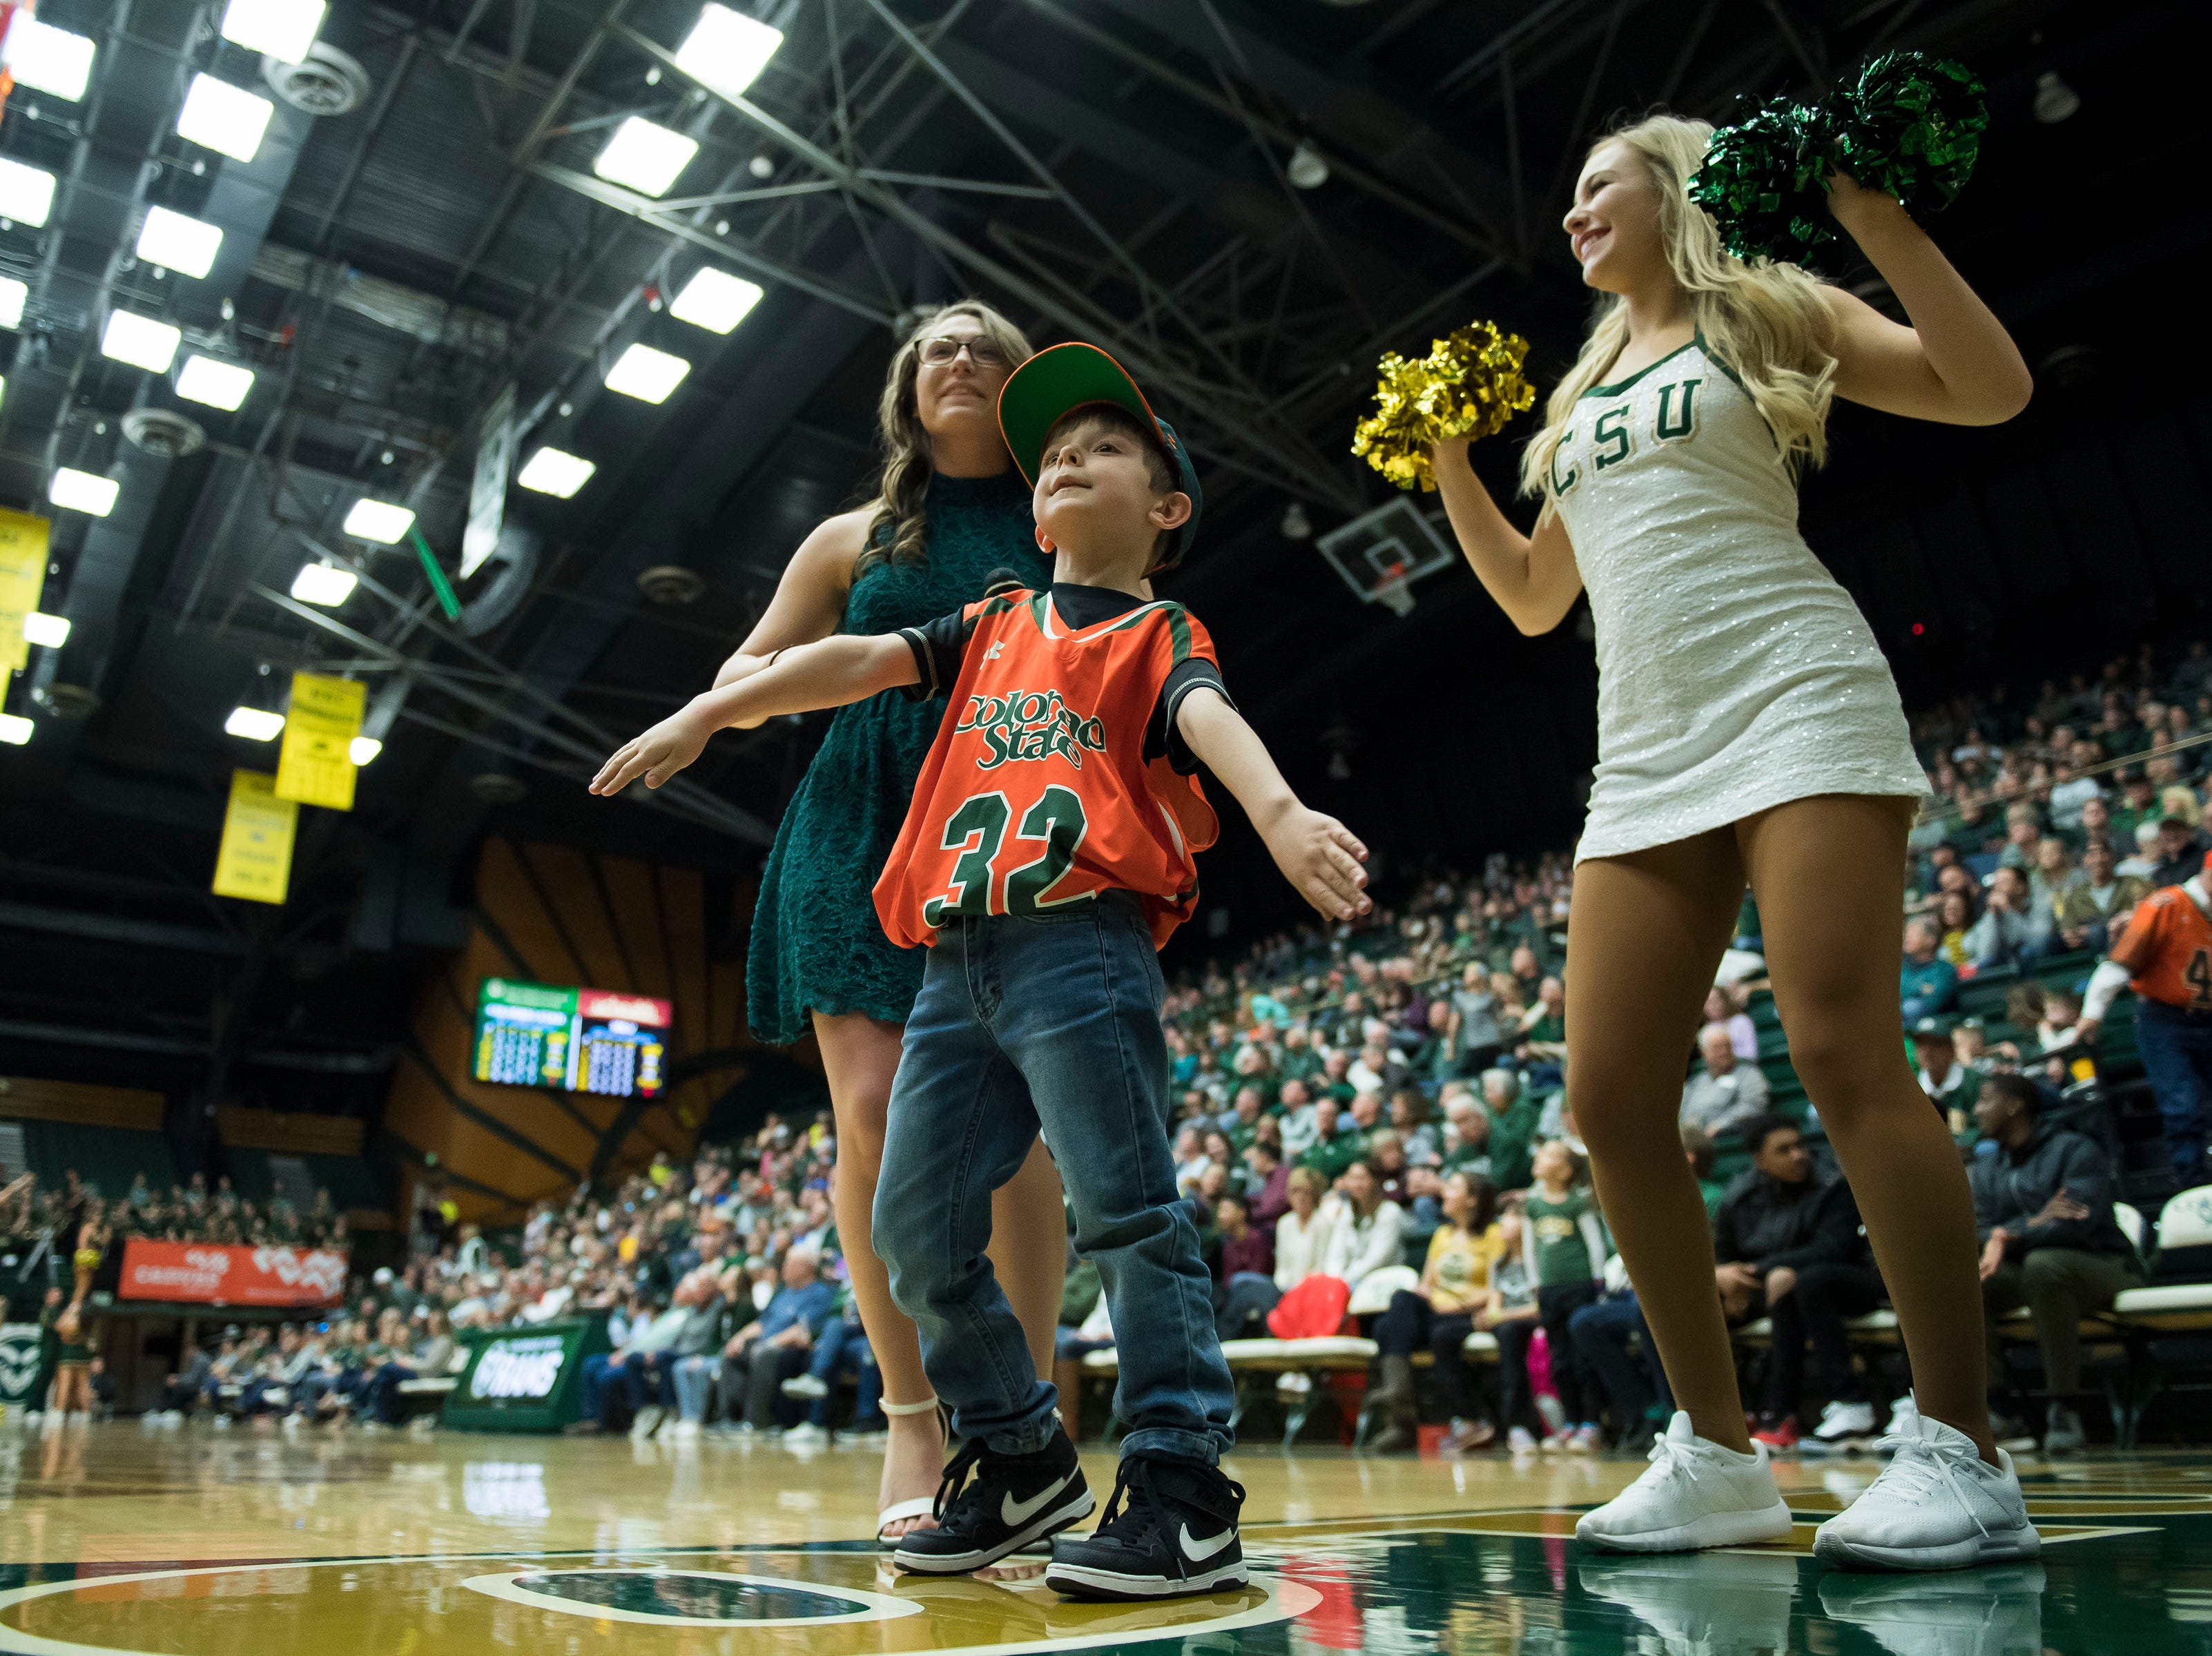 Colorado State University fan Bryce Krisl dances on-camera during a break in the action of a game against University of Nevada Las Vegas on Saturday, March 9, 2019, at Moby Arena in Fort Collins, Colo.